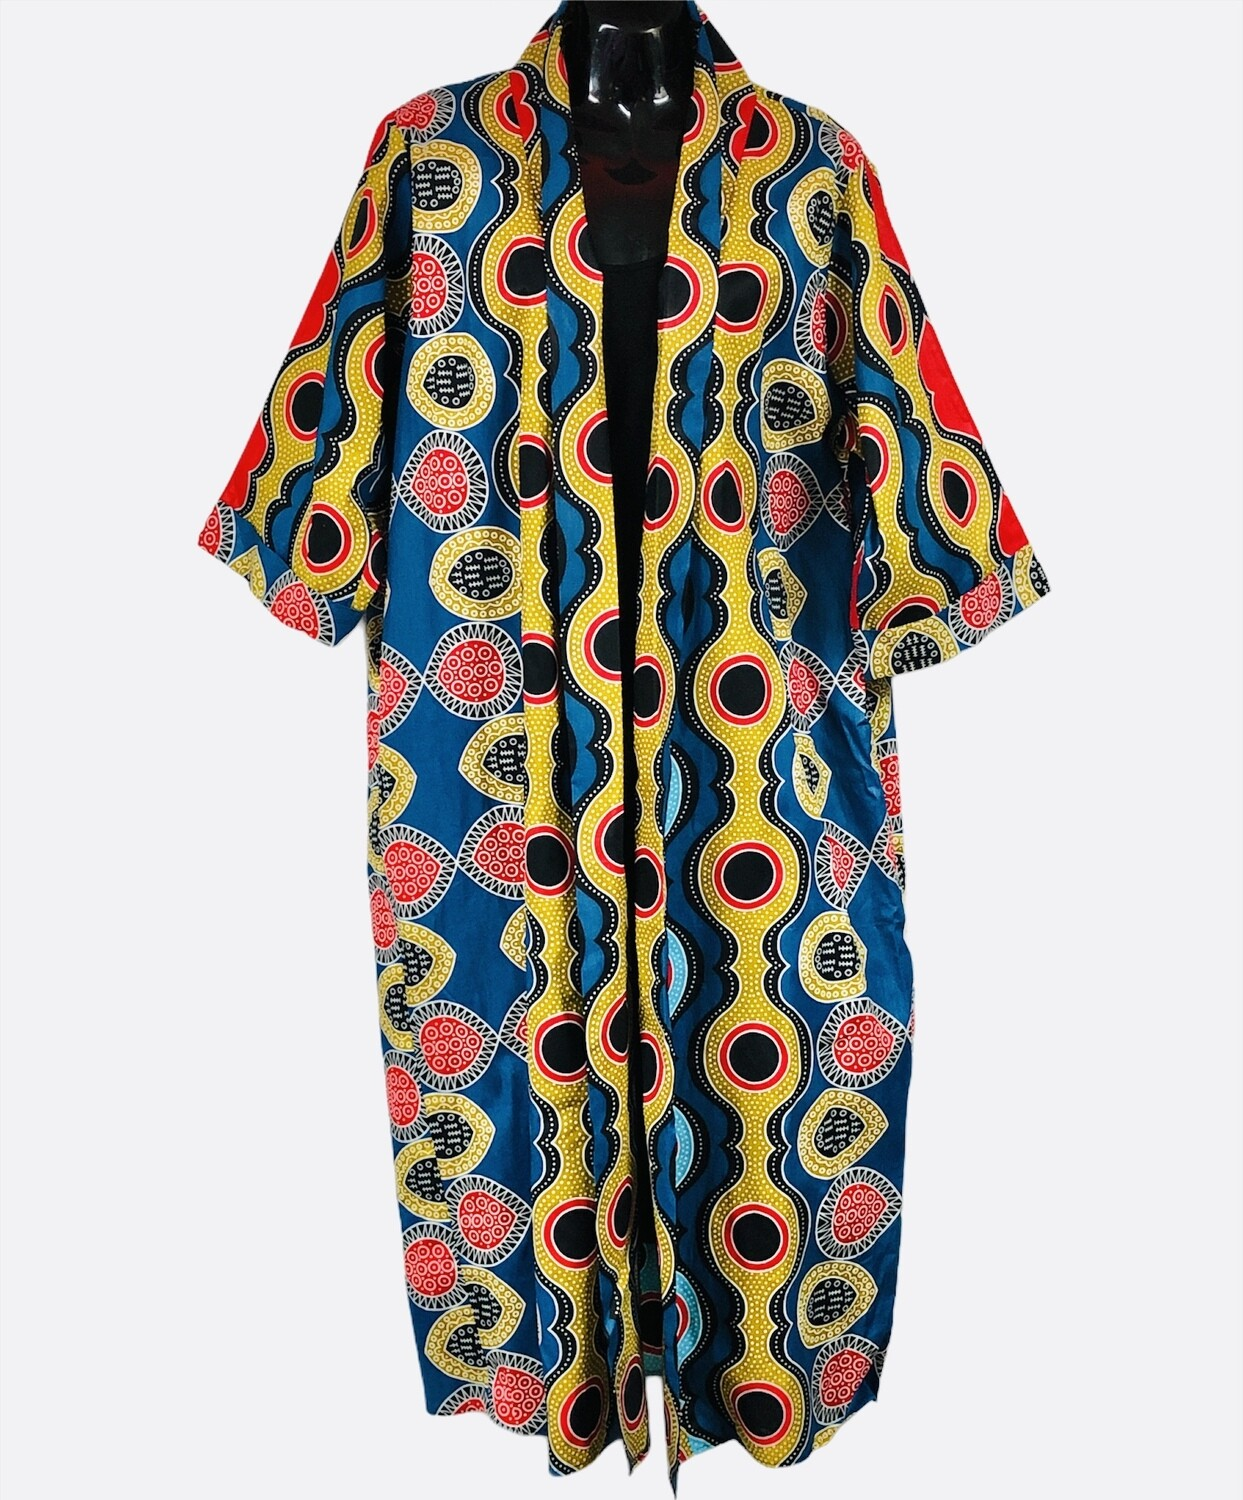 CHIC POSH Multi Color Long Abstract Print Jacket Large